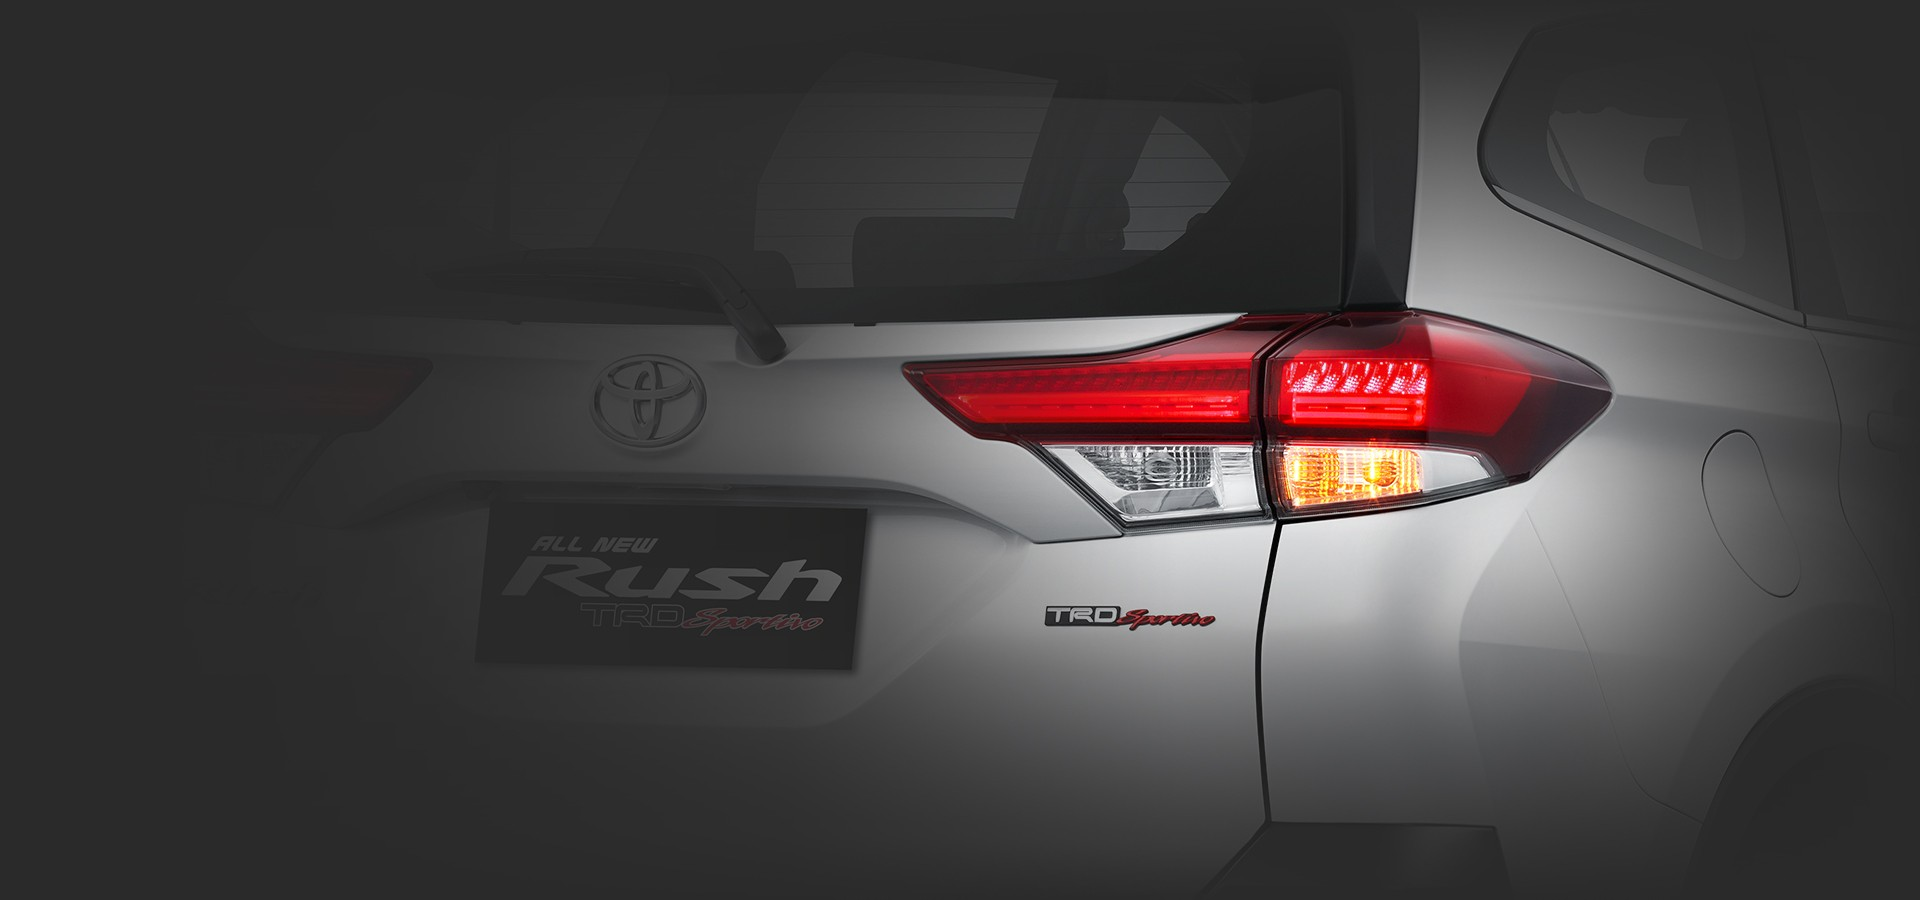 Exterior All New Rush 4